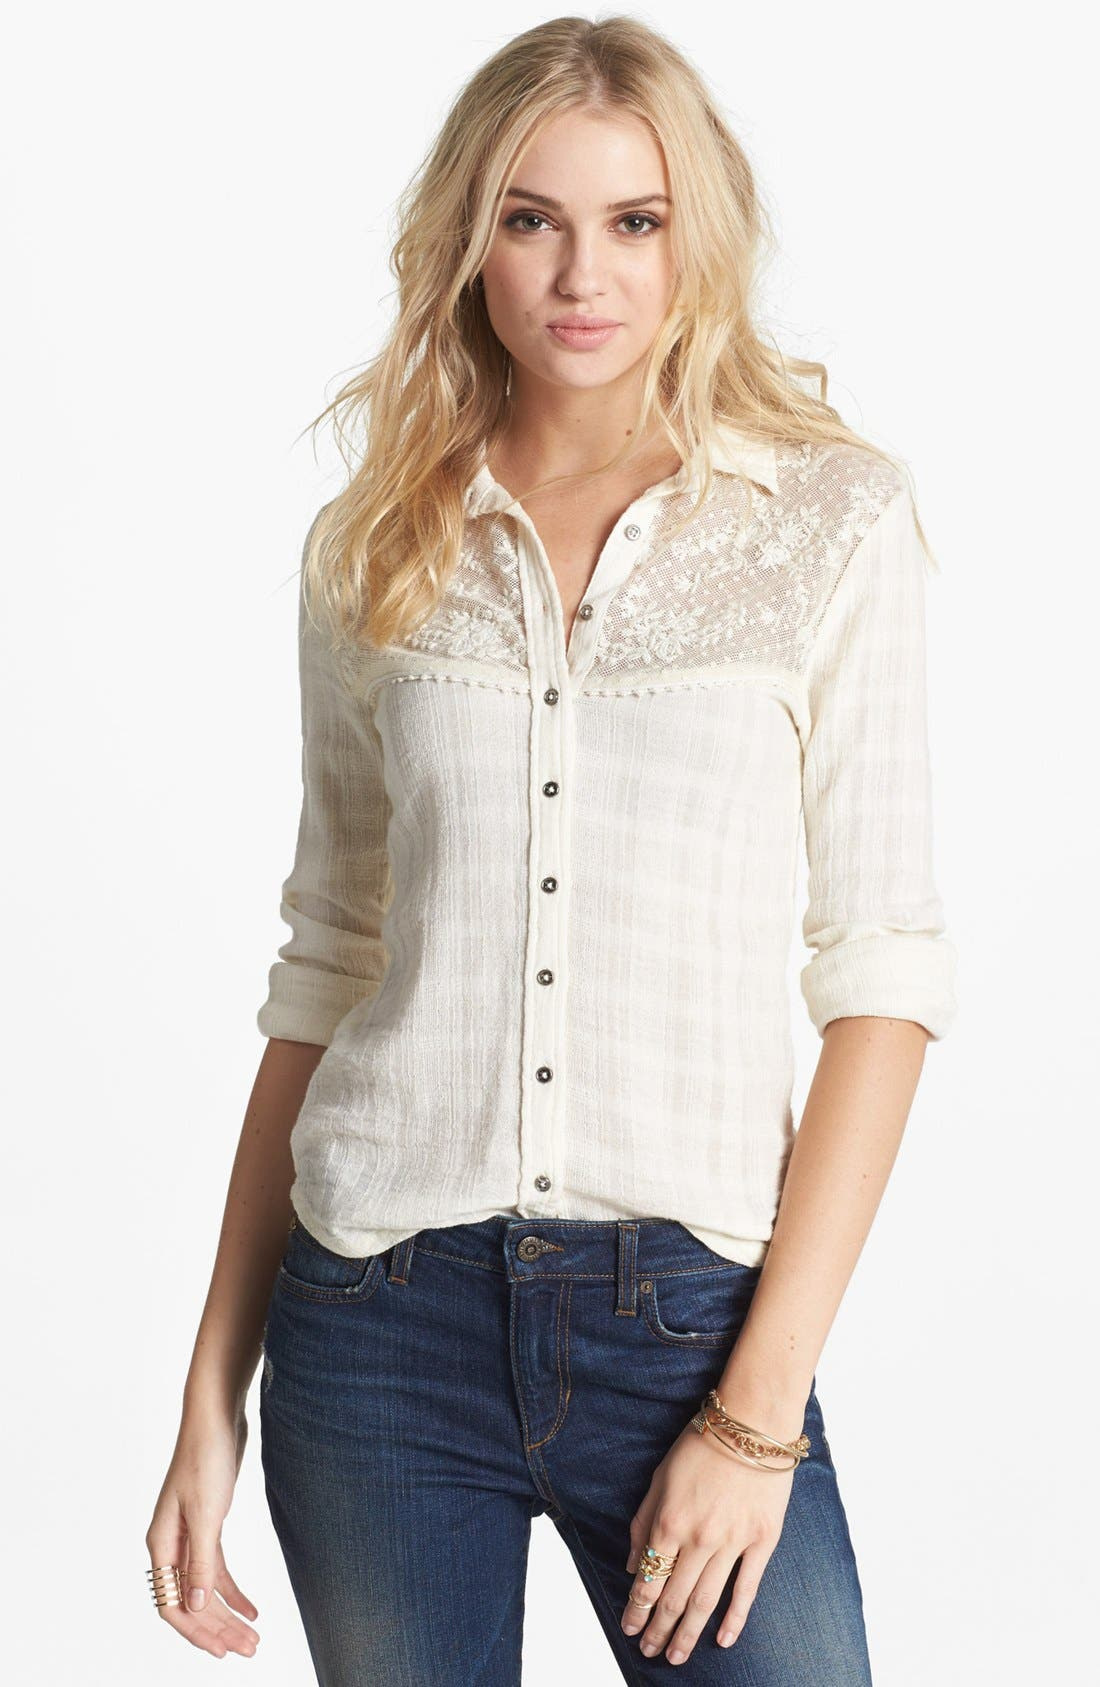 Main Image - Free People 'Saddle Up' Lace Yoke Shirt